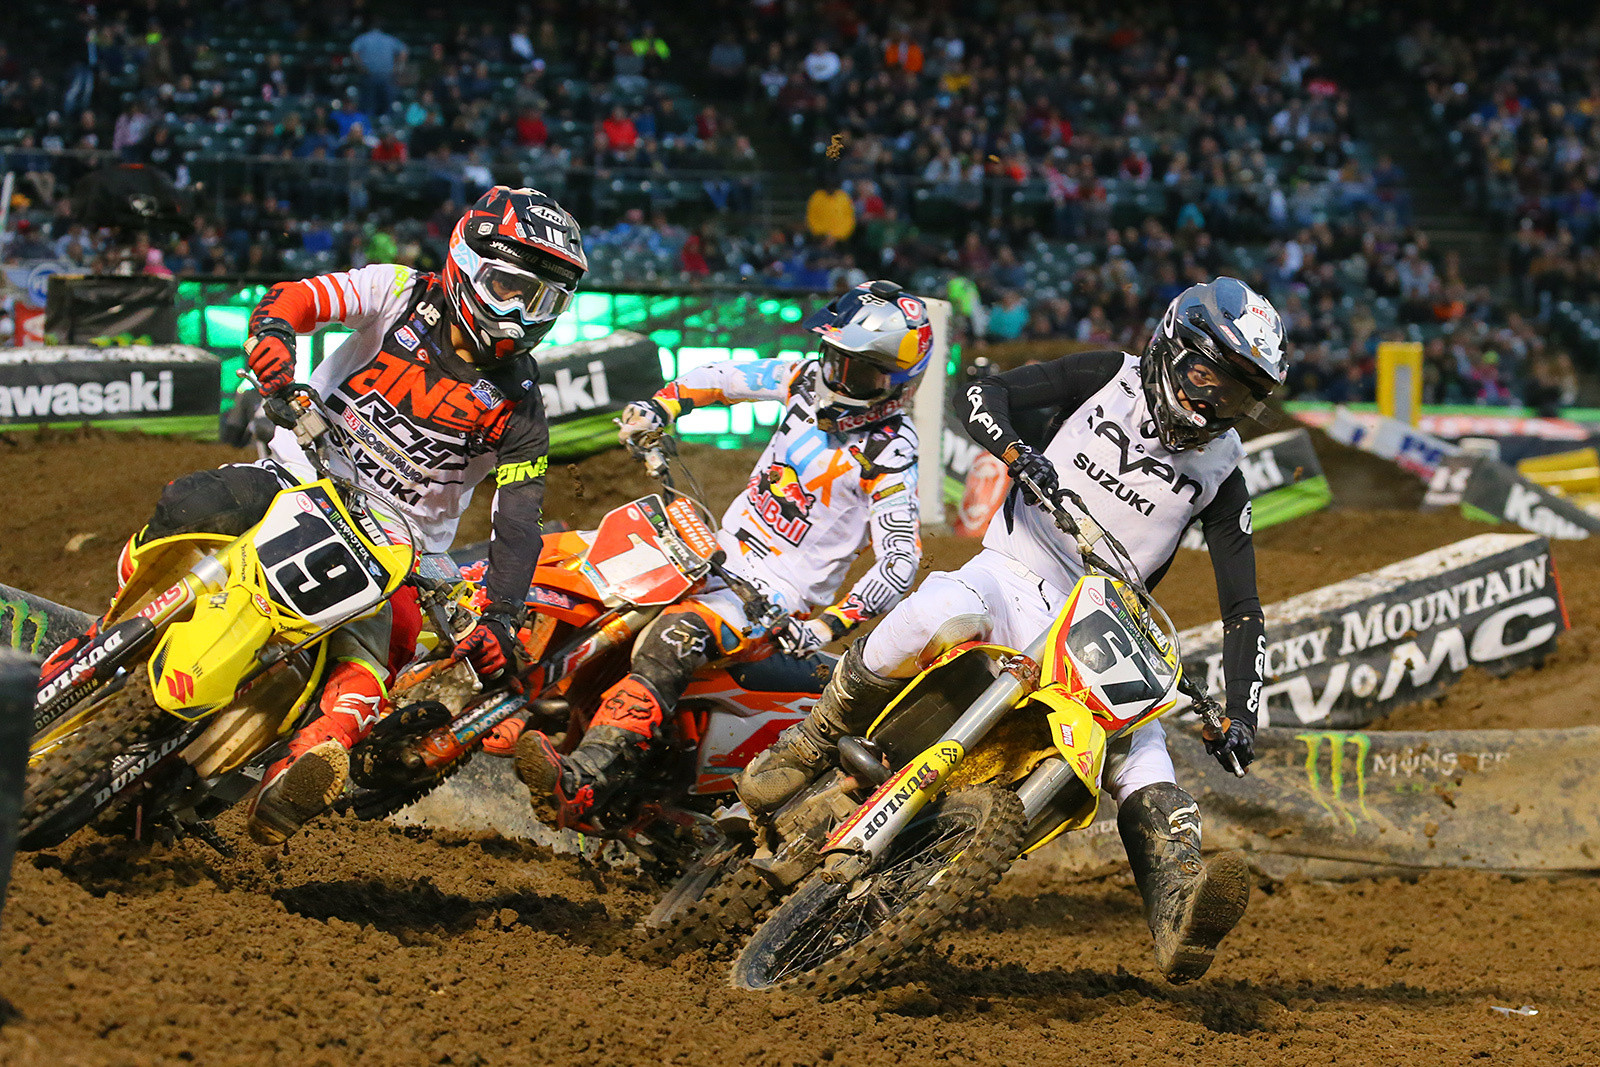 Justin Bogle, Ryan Dungey, and Jimmy Albertson - Photo Blast: Oakland - Motocross Pictures - Vital MX